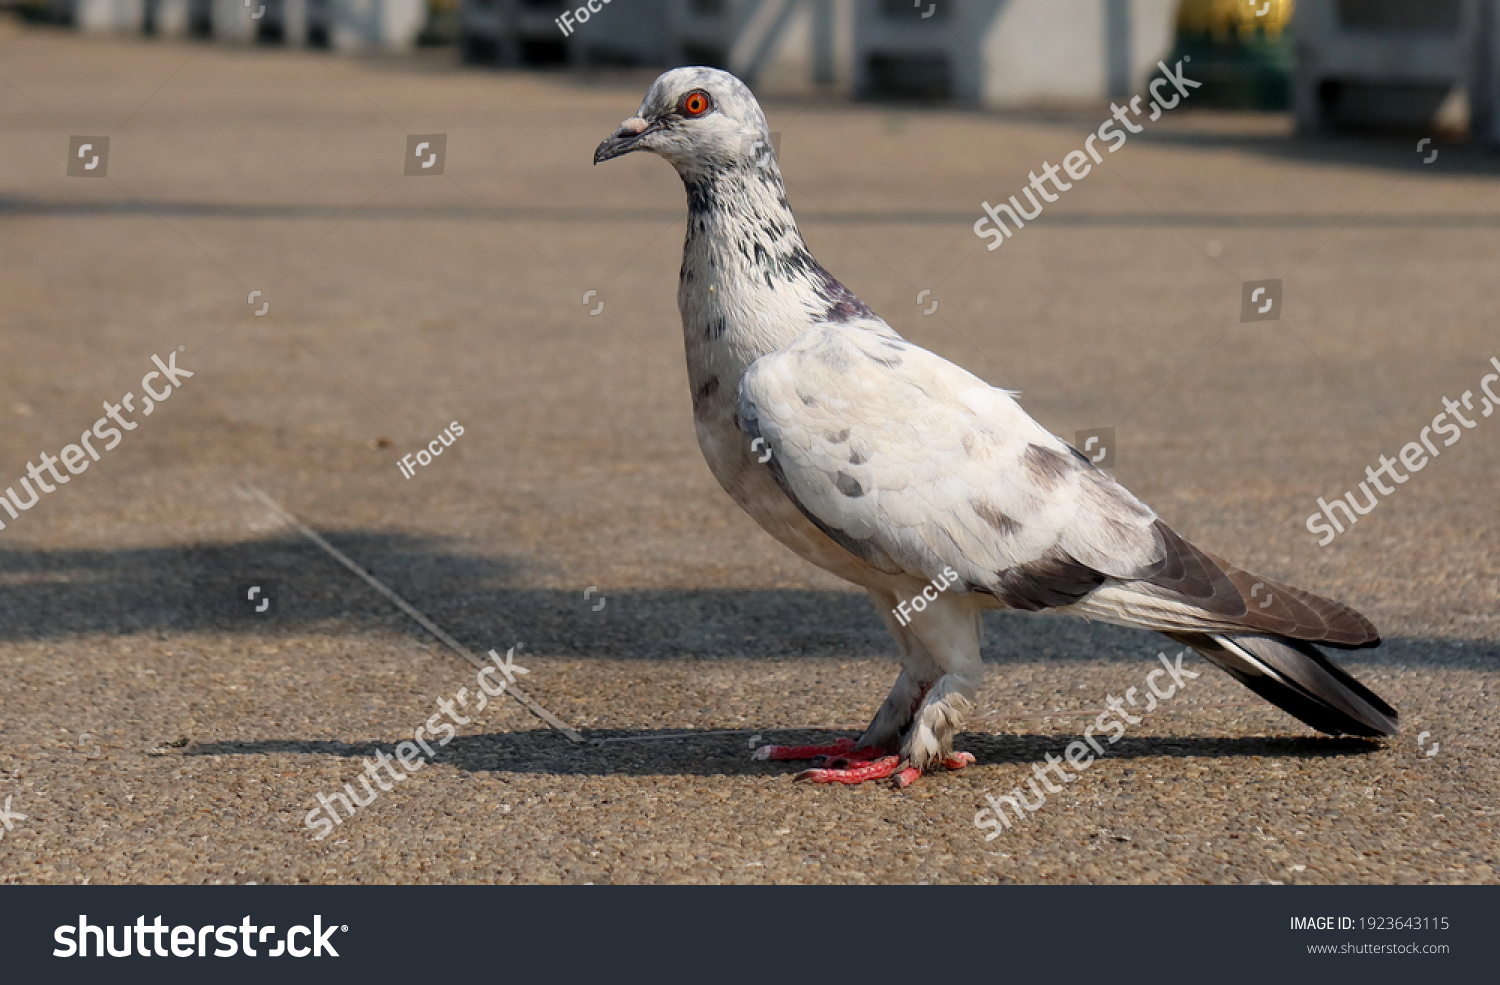 stock-photo-white-pigeon-on-granulated-t